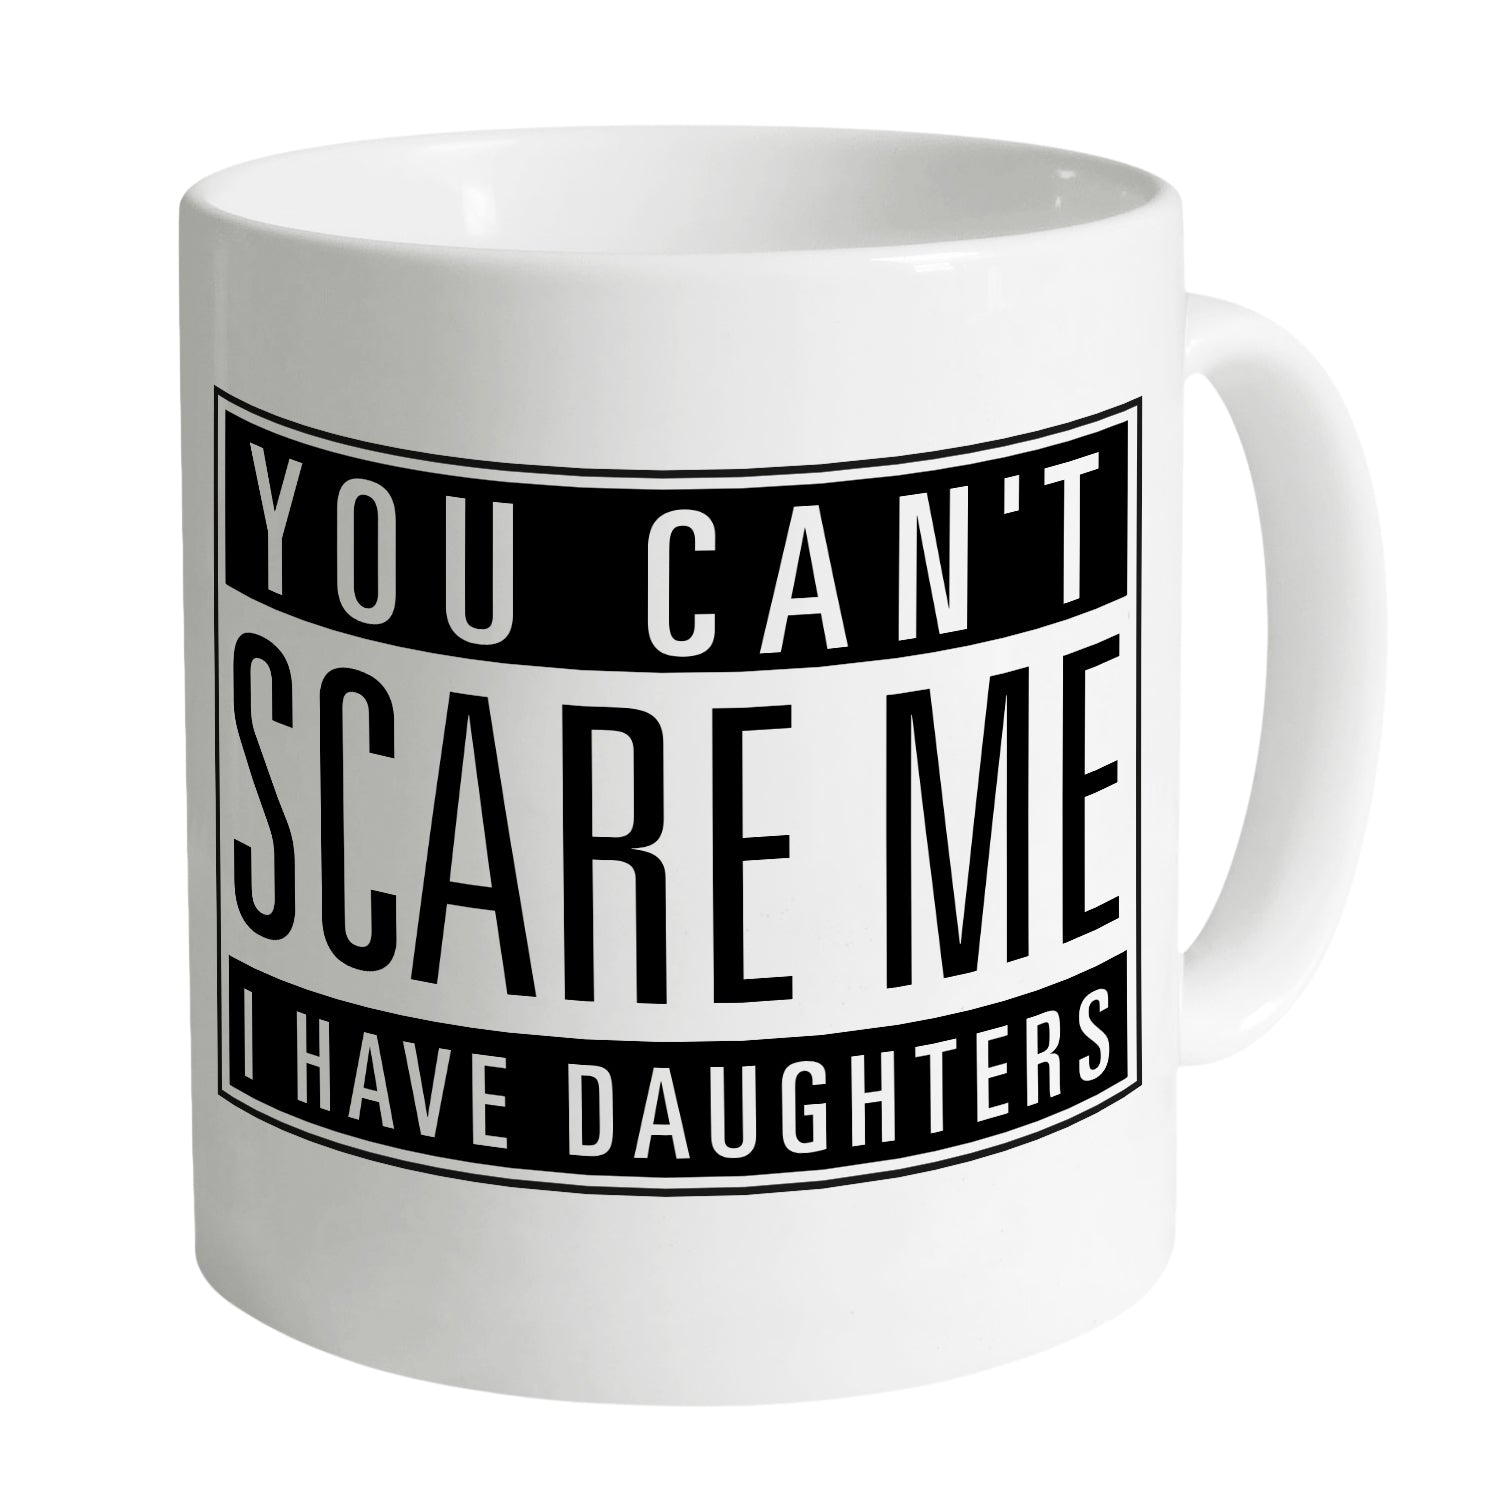 Cheap You Can't Scare Me – Daughters Mug Clothing & Accessories